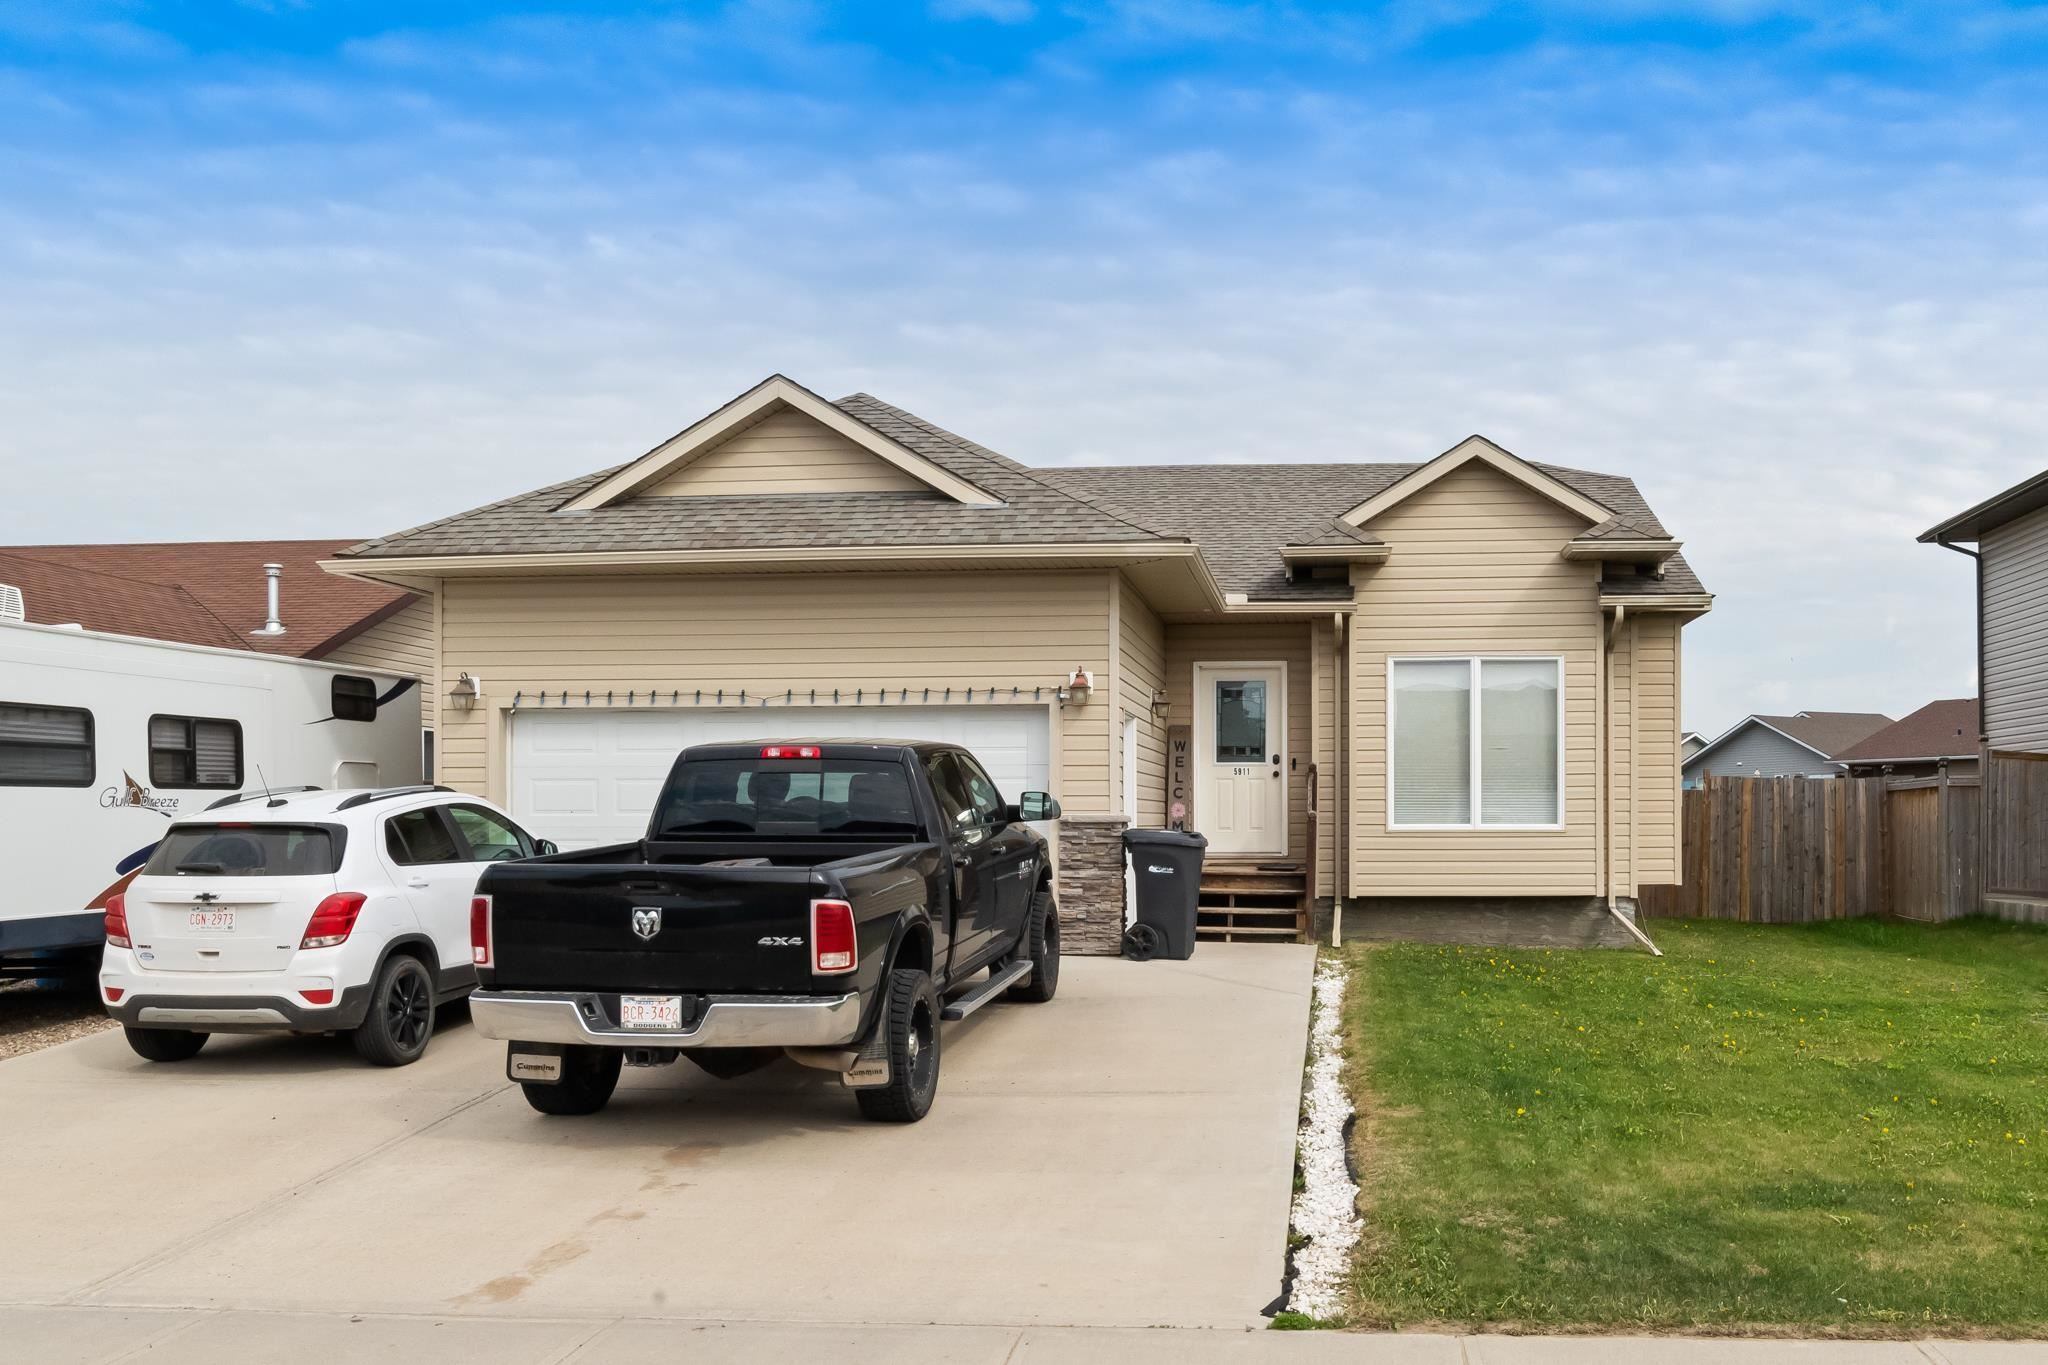 Main Photo: 5911 Meadow Way: Cold Lake House for sale : MLS®# E4248001